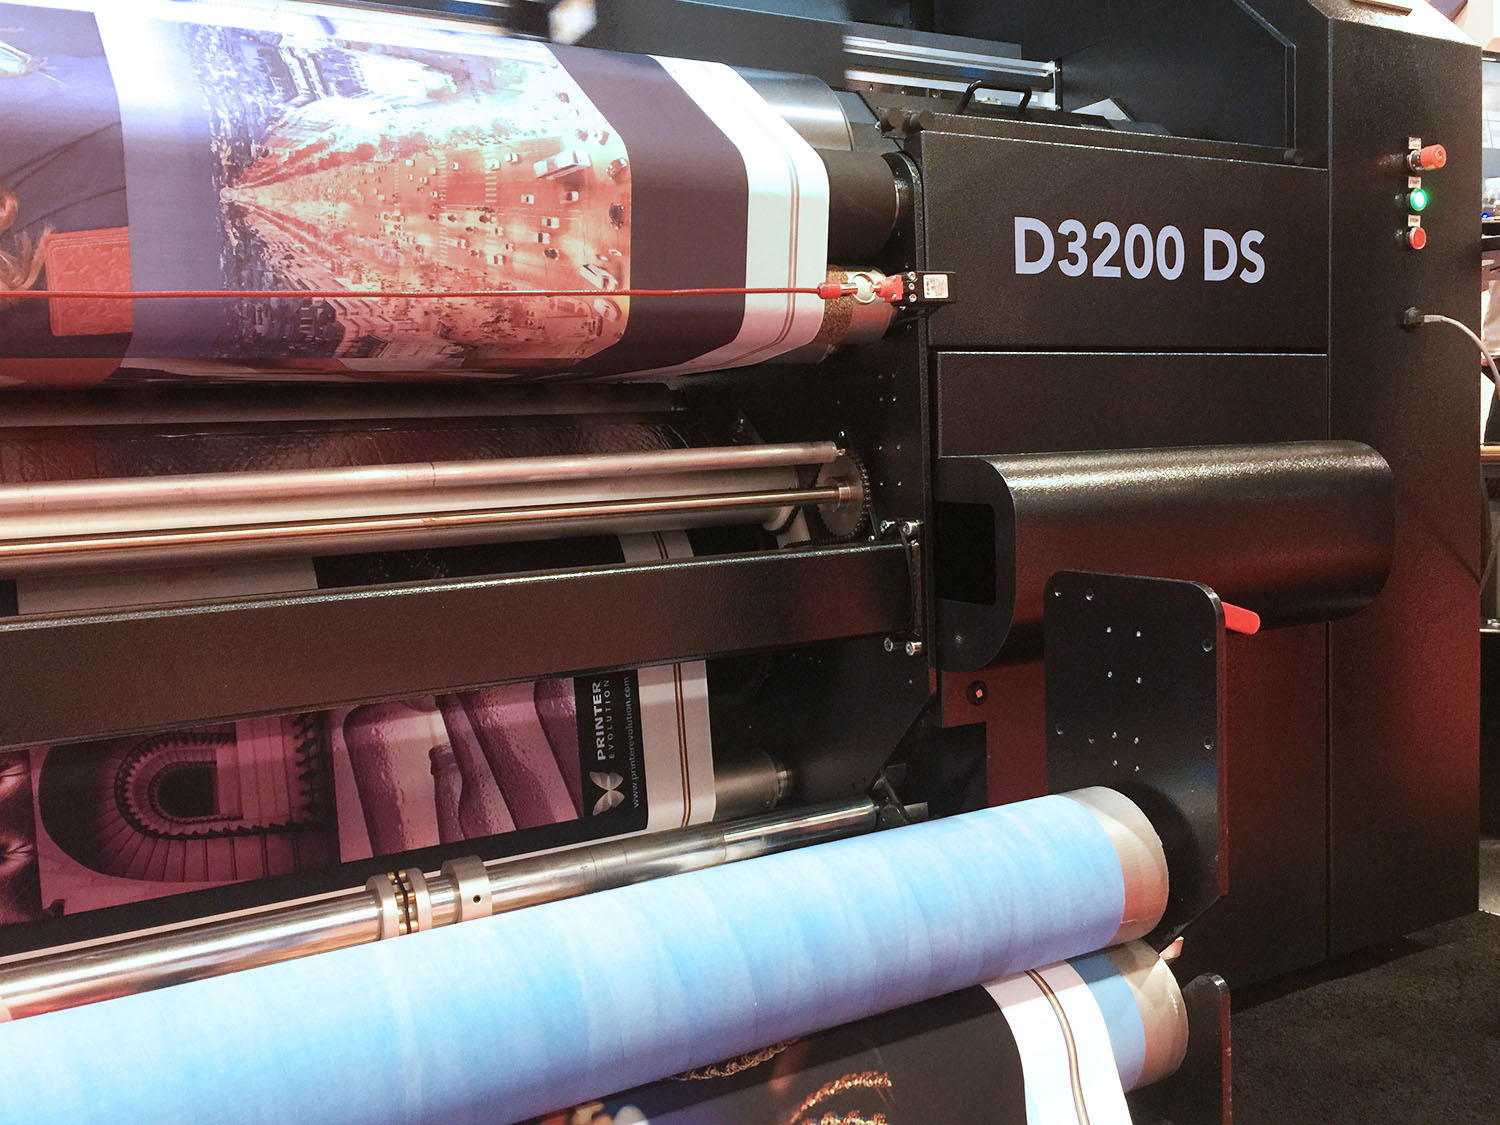 d3200 all in one dye sub printer